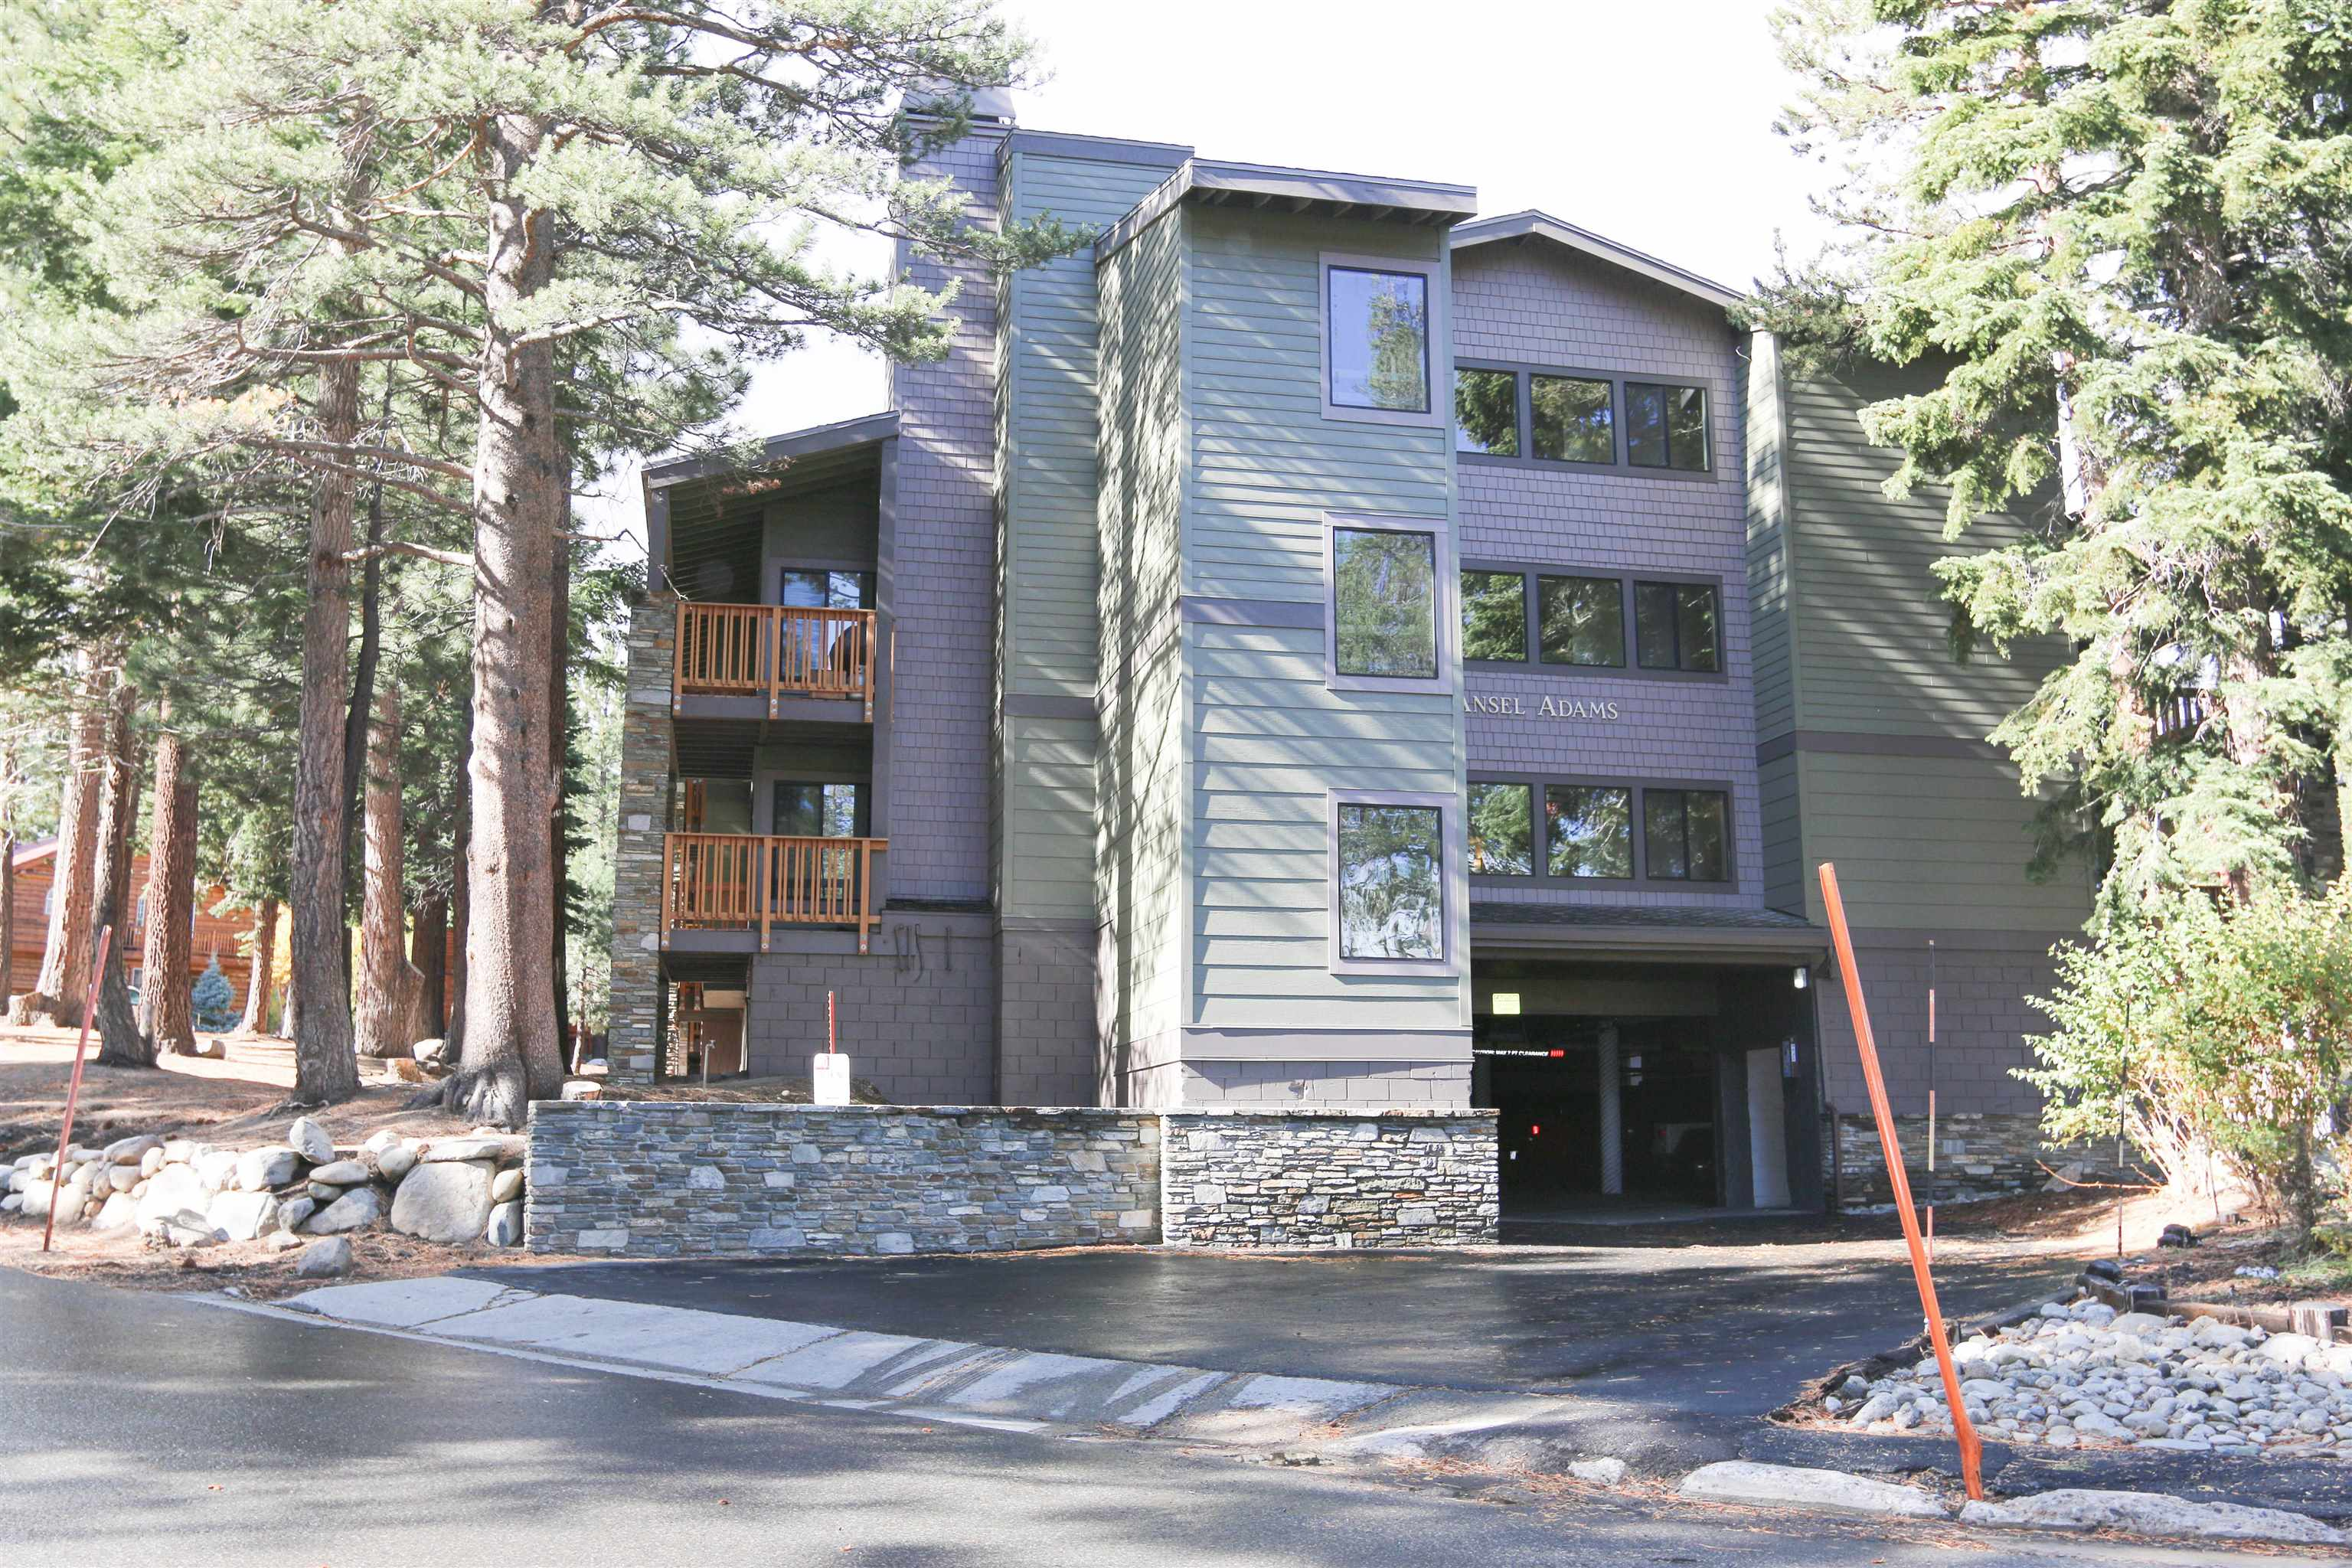 Beautifully located second floor corner 1 bedroom / 1 bath condo at The Summit. Wrap-around covered deck overlooks forested area and residential neighborhood. South and Sherwin Range views. Located directly adjacent to elevator and stairwell for easy convenience to understructure parking and street level and shuttles. Walk or jump the shuttle to Eagle Express and Eagle Base. Directly across the street from the Sierra Star golf course and the Town bike paths. The Summit is in great shape with modern exterior and interior hallway upgrades. Well managed and well funded HOA. HOA fees include basic cable TV and Internet. Buyer shall be responsible for fireplace retrofitting but propane gas is available and makes an excellent new fireplace option. Owner storage closets available in unit. Use now and remodel later! Check out the video tour.